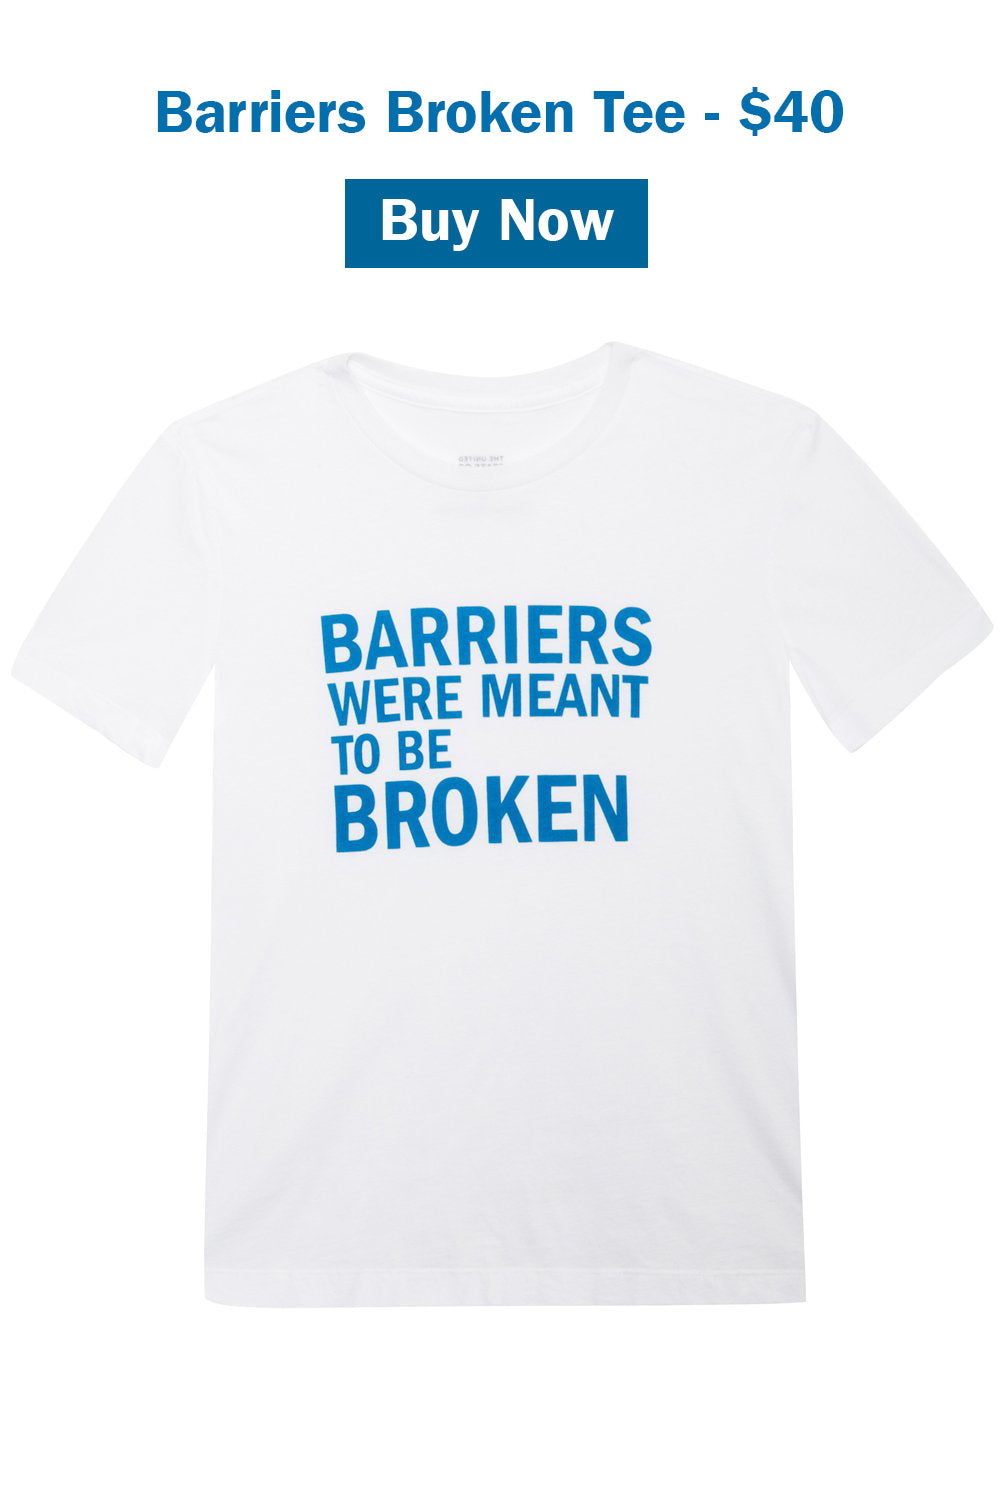 Barriers Were Meant to be Broken T-shirt